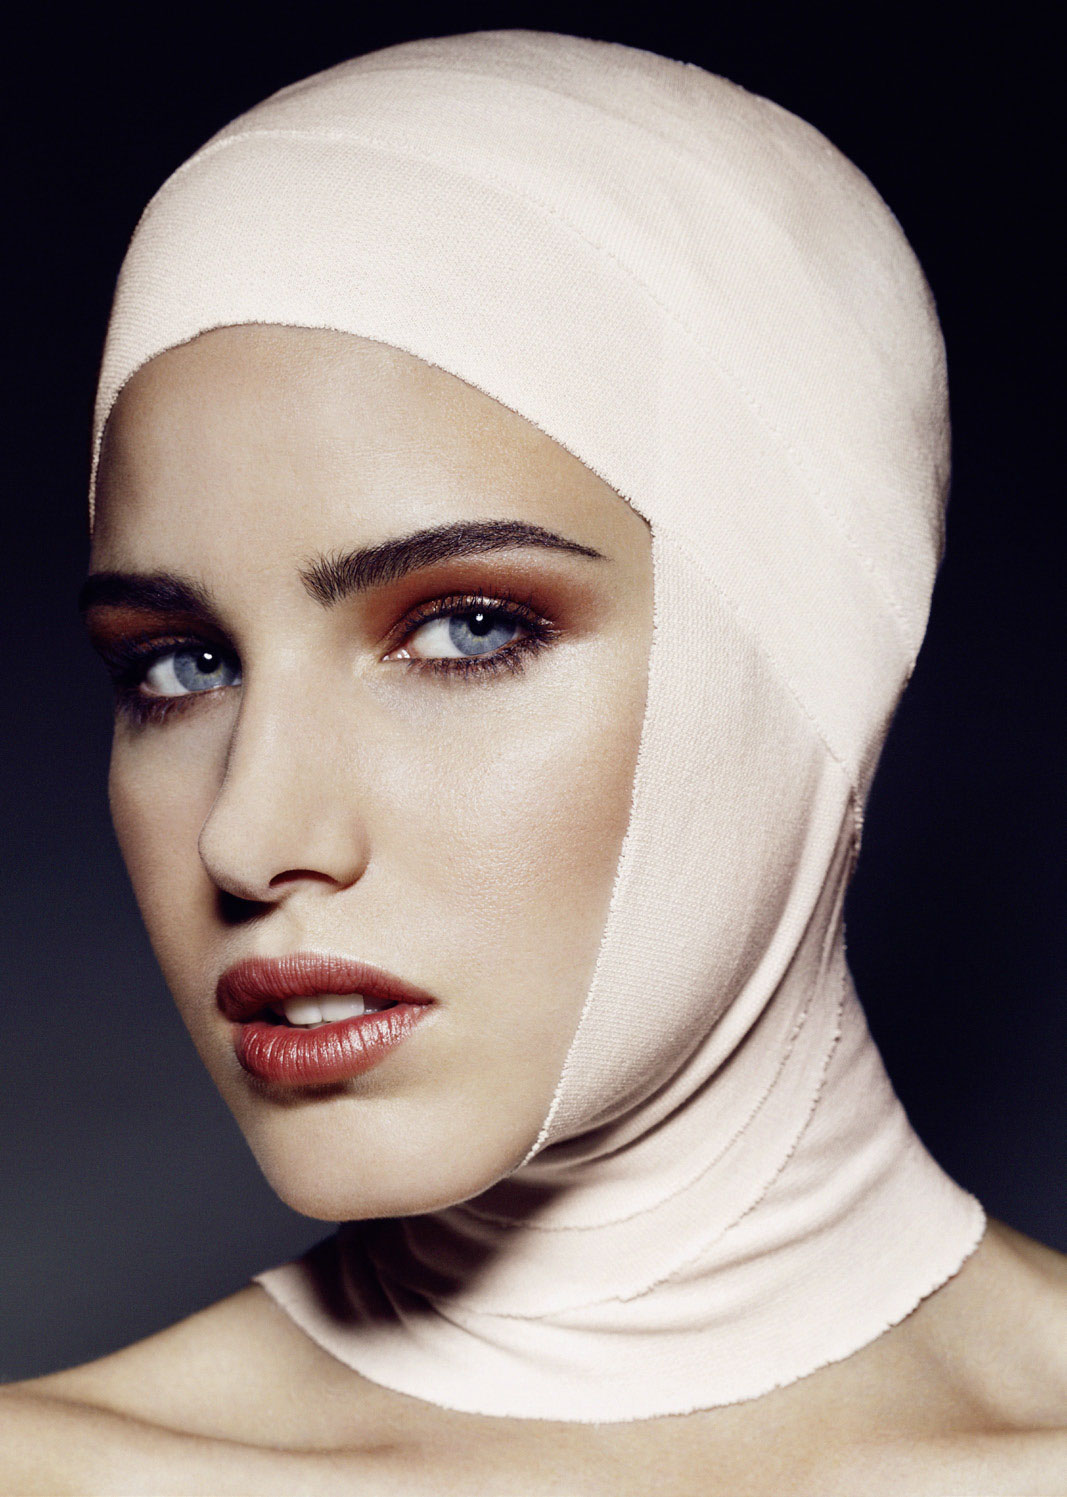 Beauty By Filippo Del Vita For Quality Mag